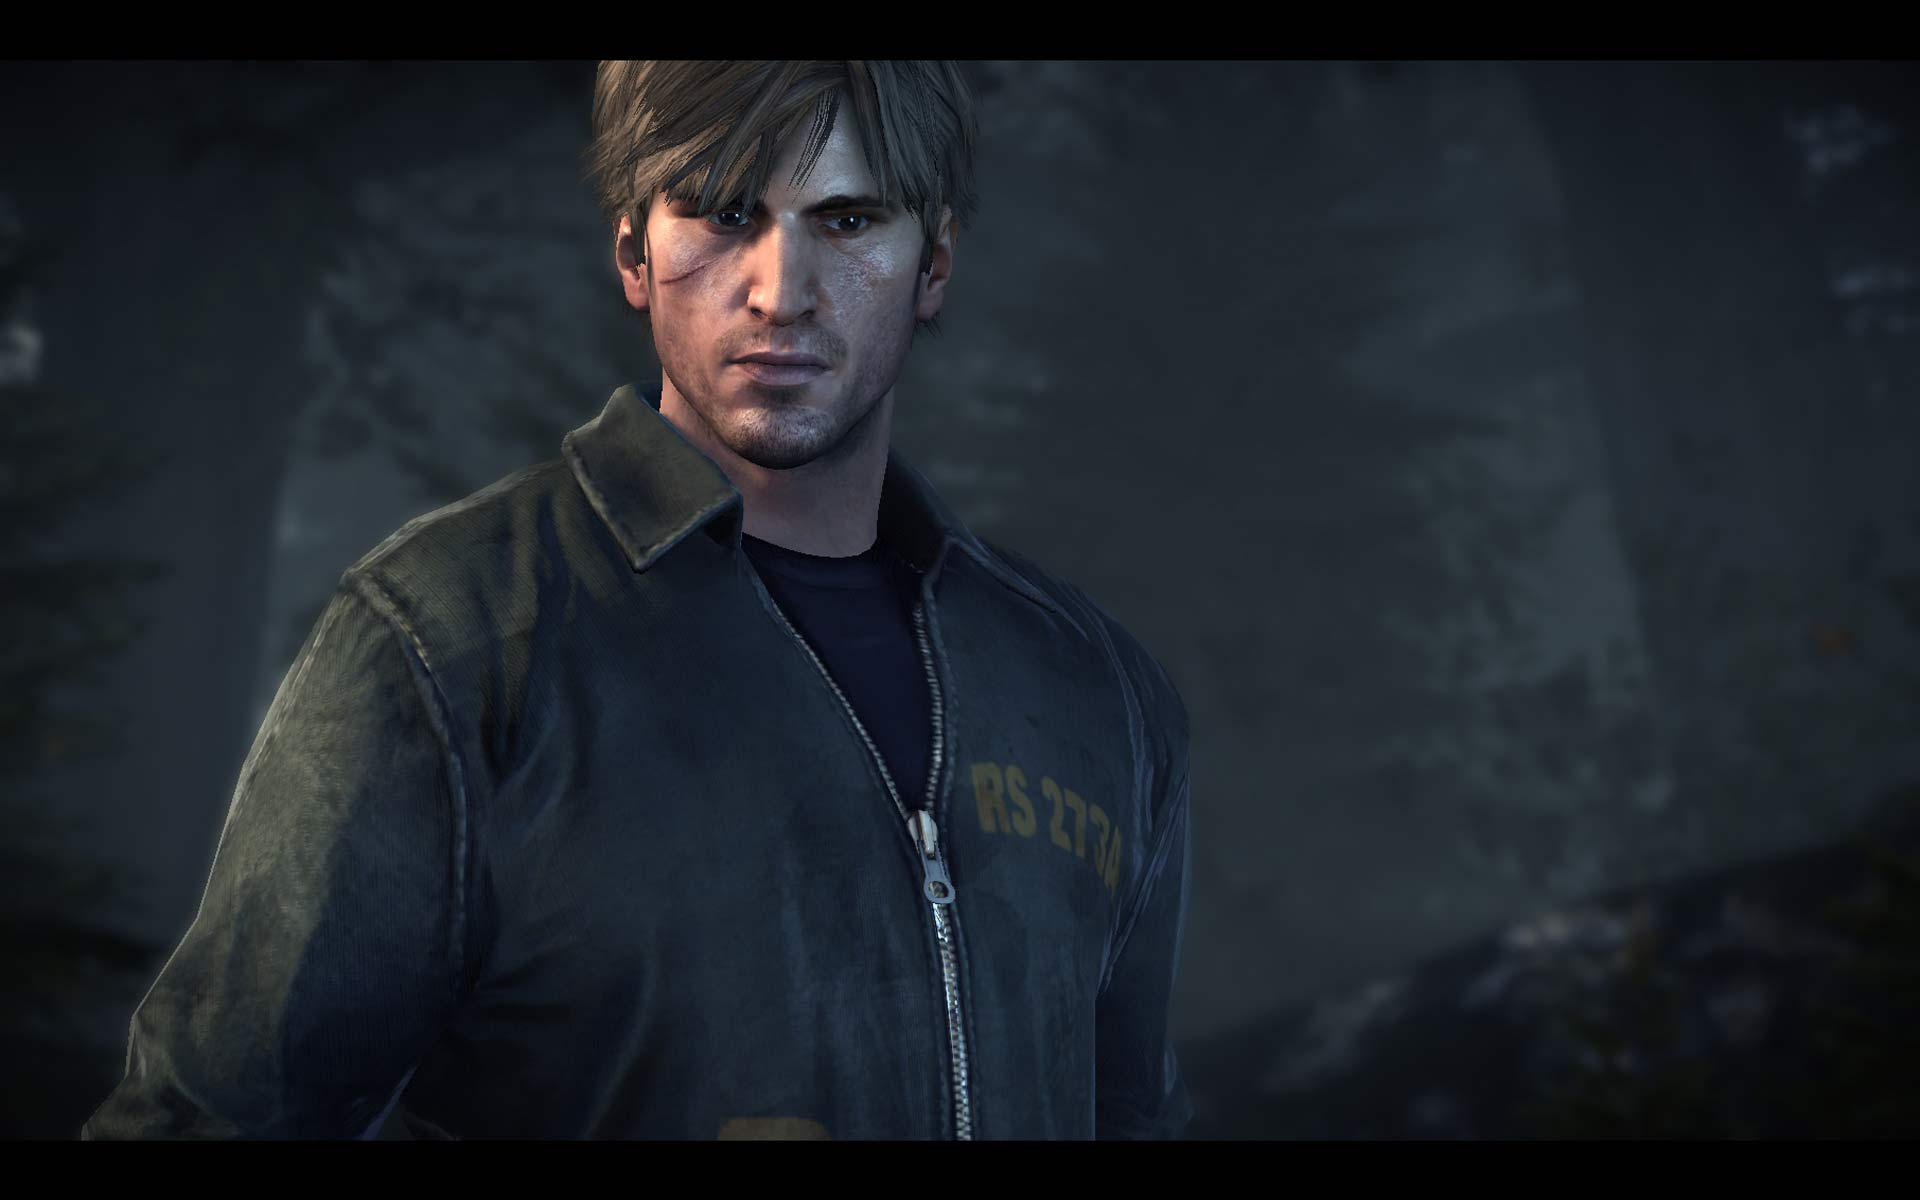 Silent Hill: Downpour High-Res Screens & New Release Information